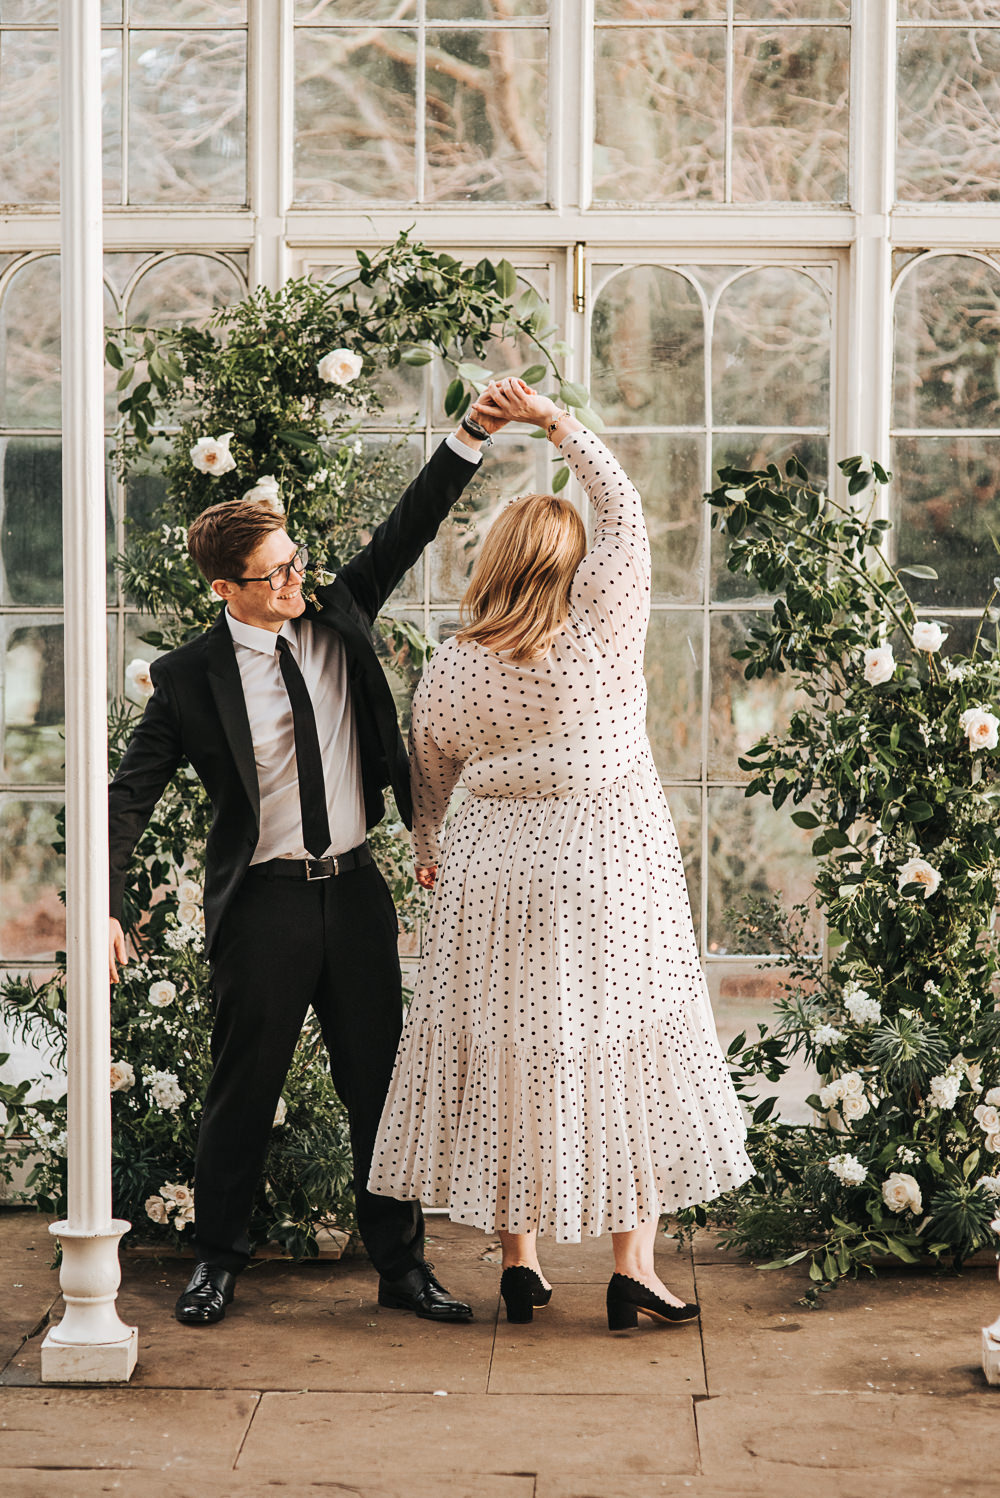 Flower Arch Installation Backdrop Ceremony Aisle Greenery Foliage Rose Wild Natural Wollaton Hall Wedding Pear and Bear Photography